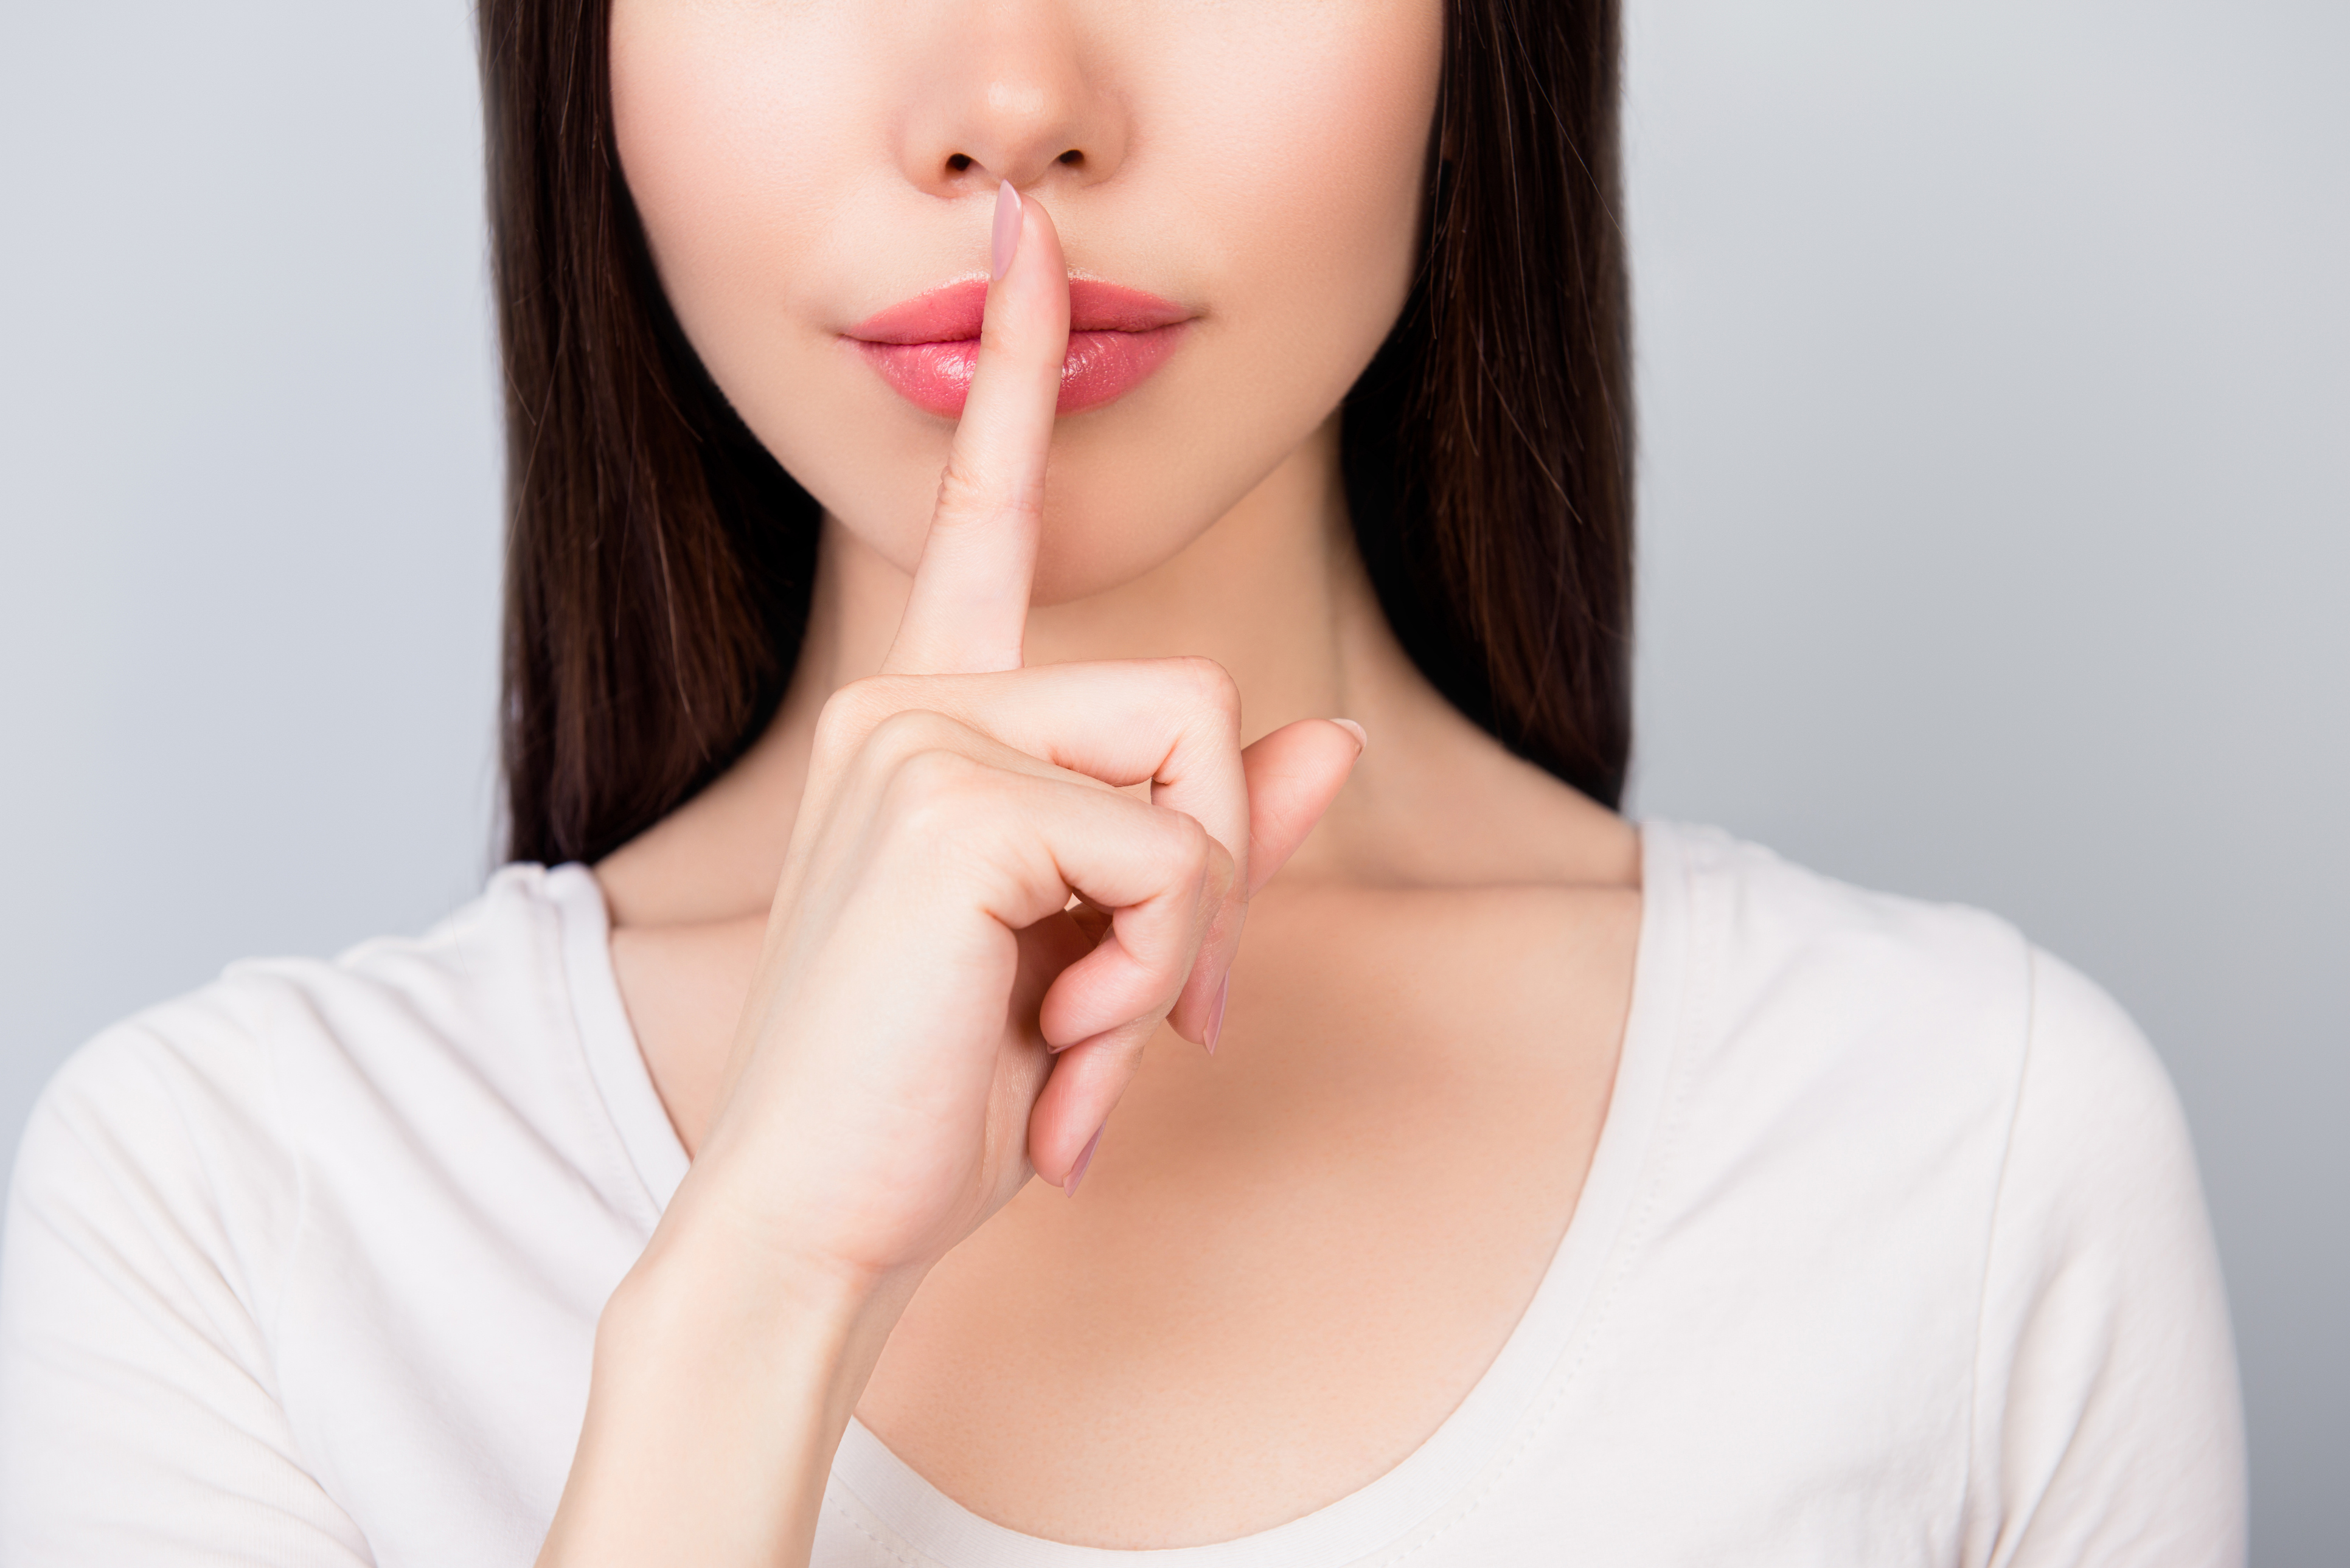 Top 10 reasons to keep your personal information private